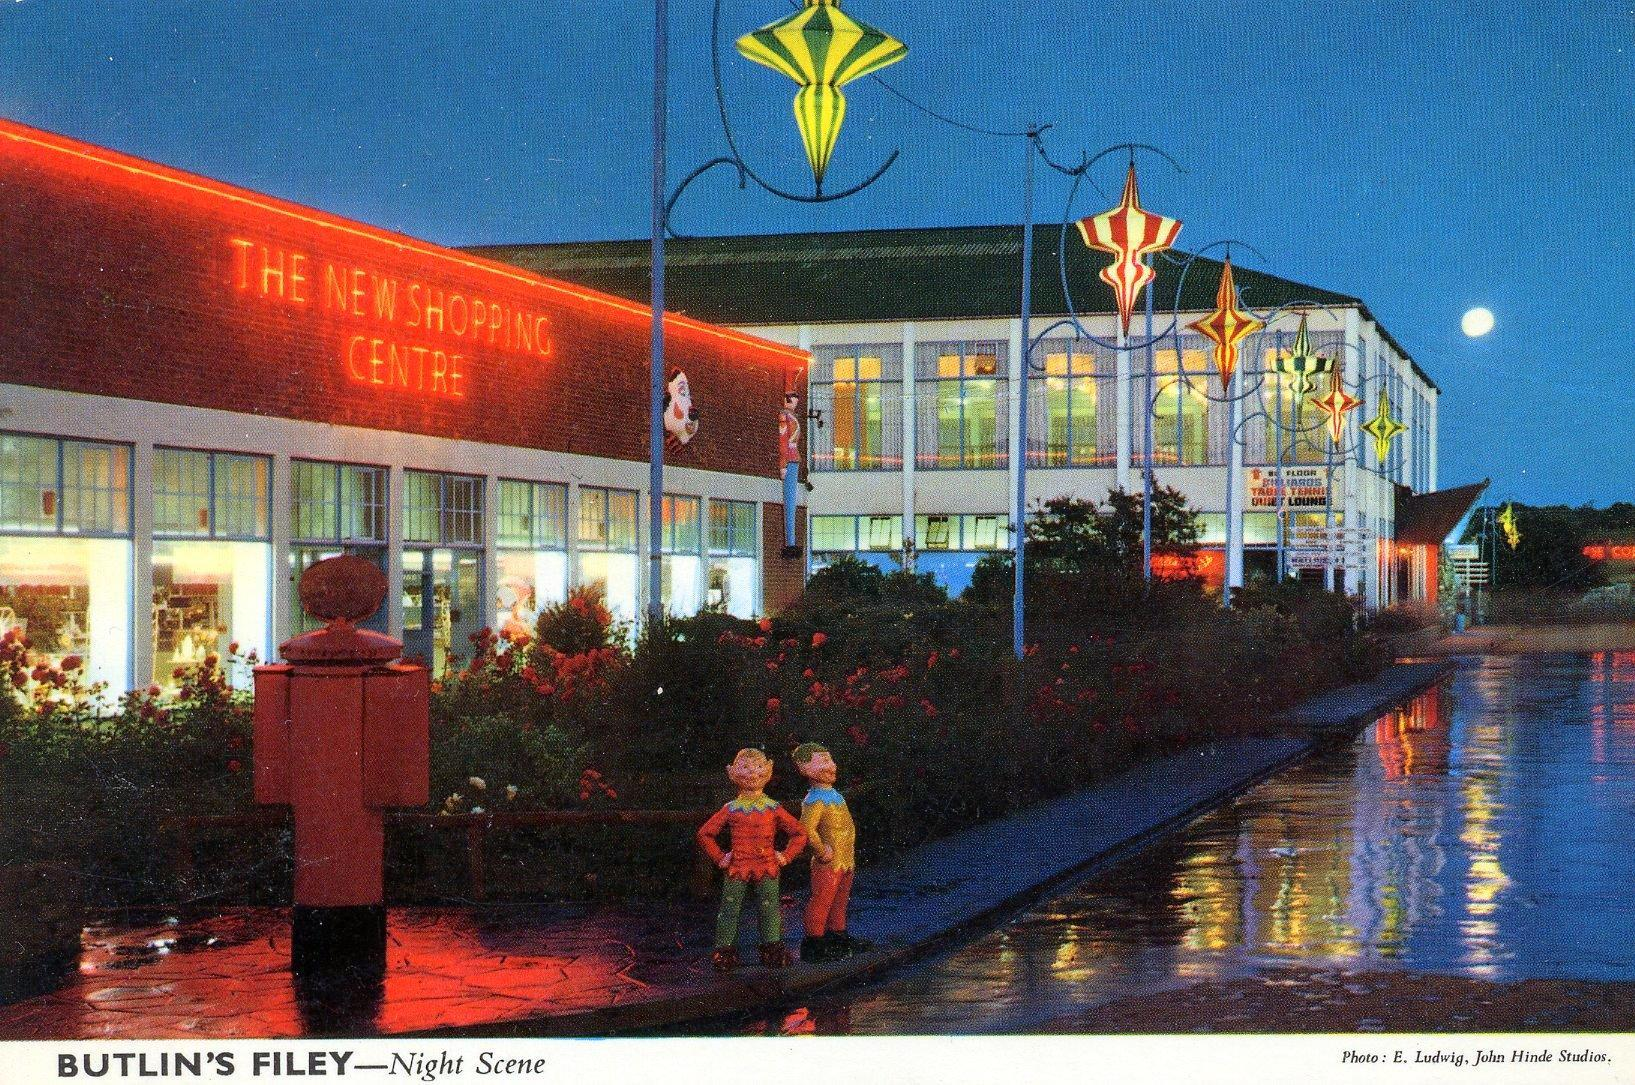 Butlins Filey - Night View (postcard, late 1960s)